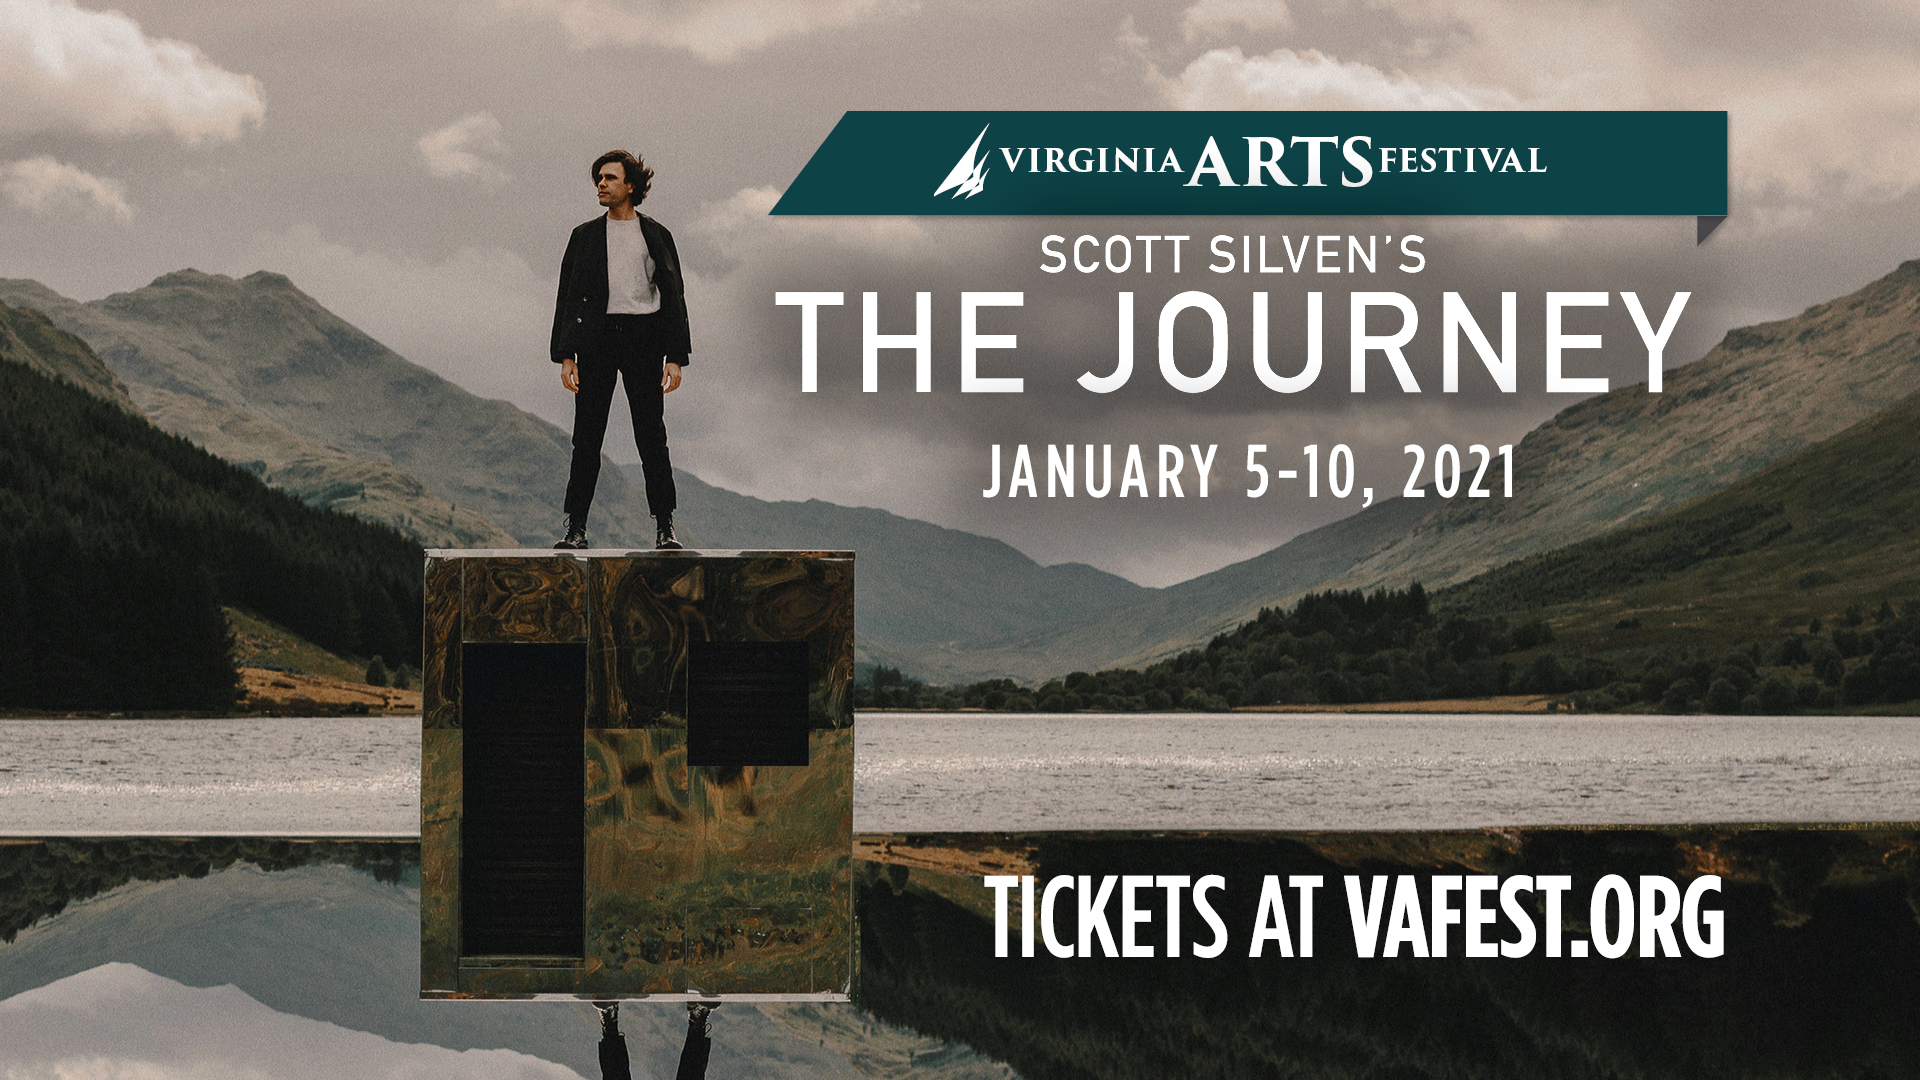 Virginia Arts Festival adds virtual performance dates January 5-10